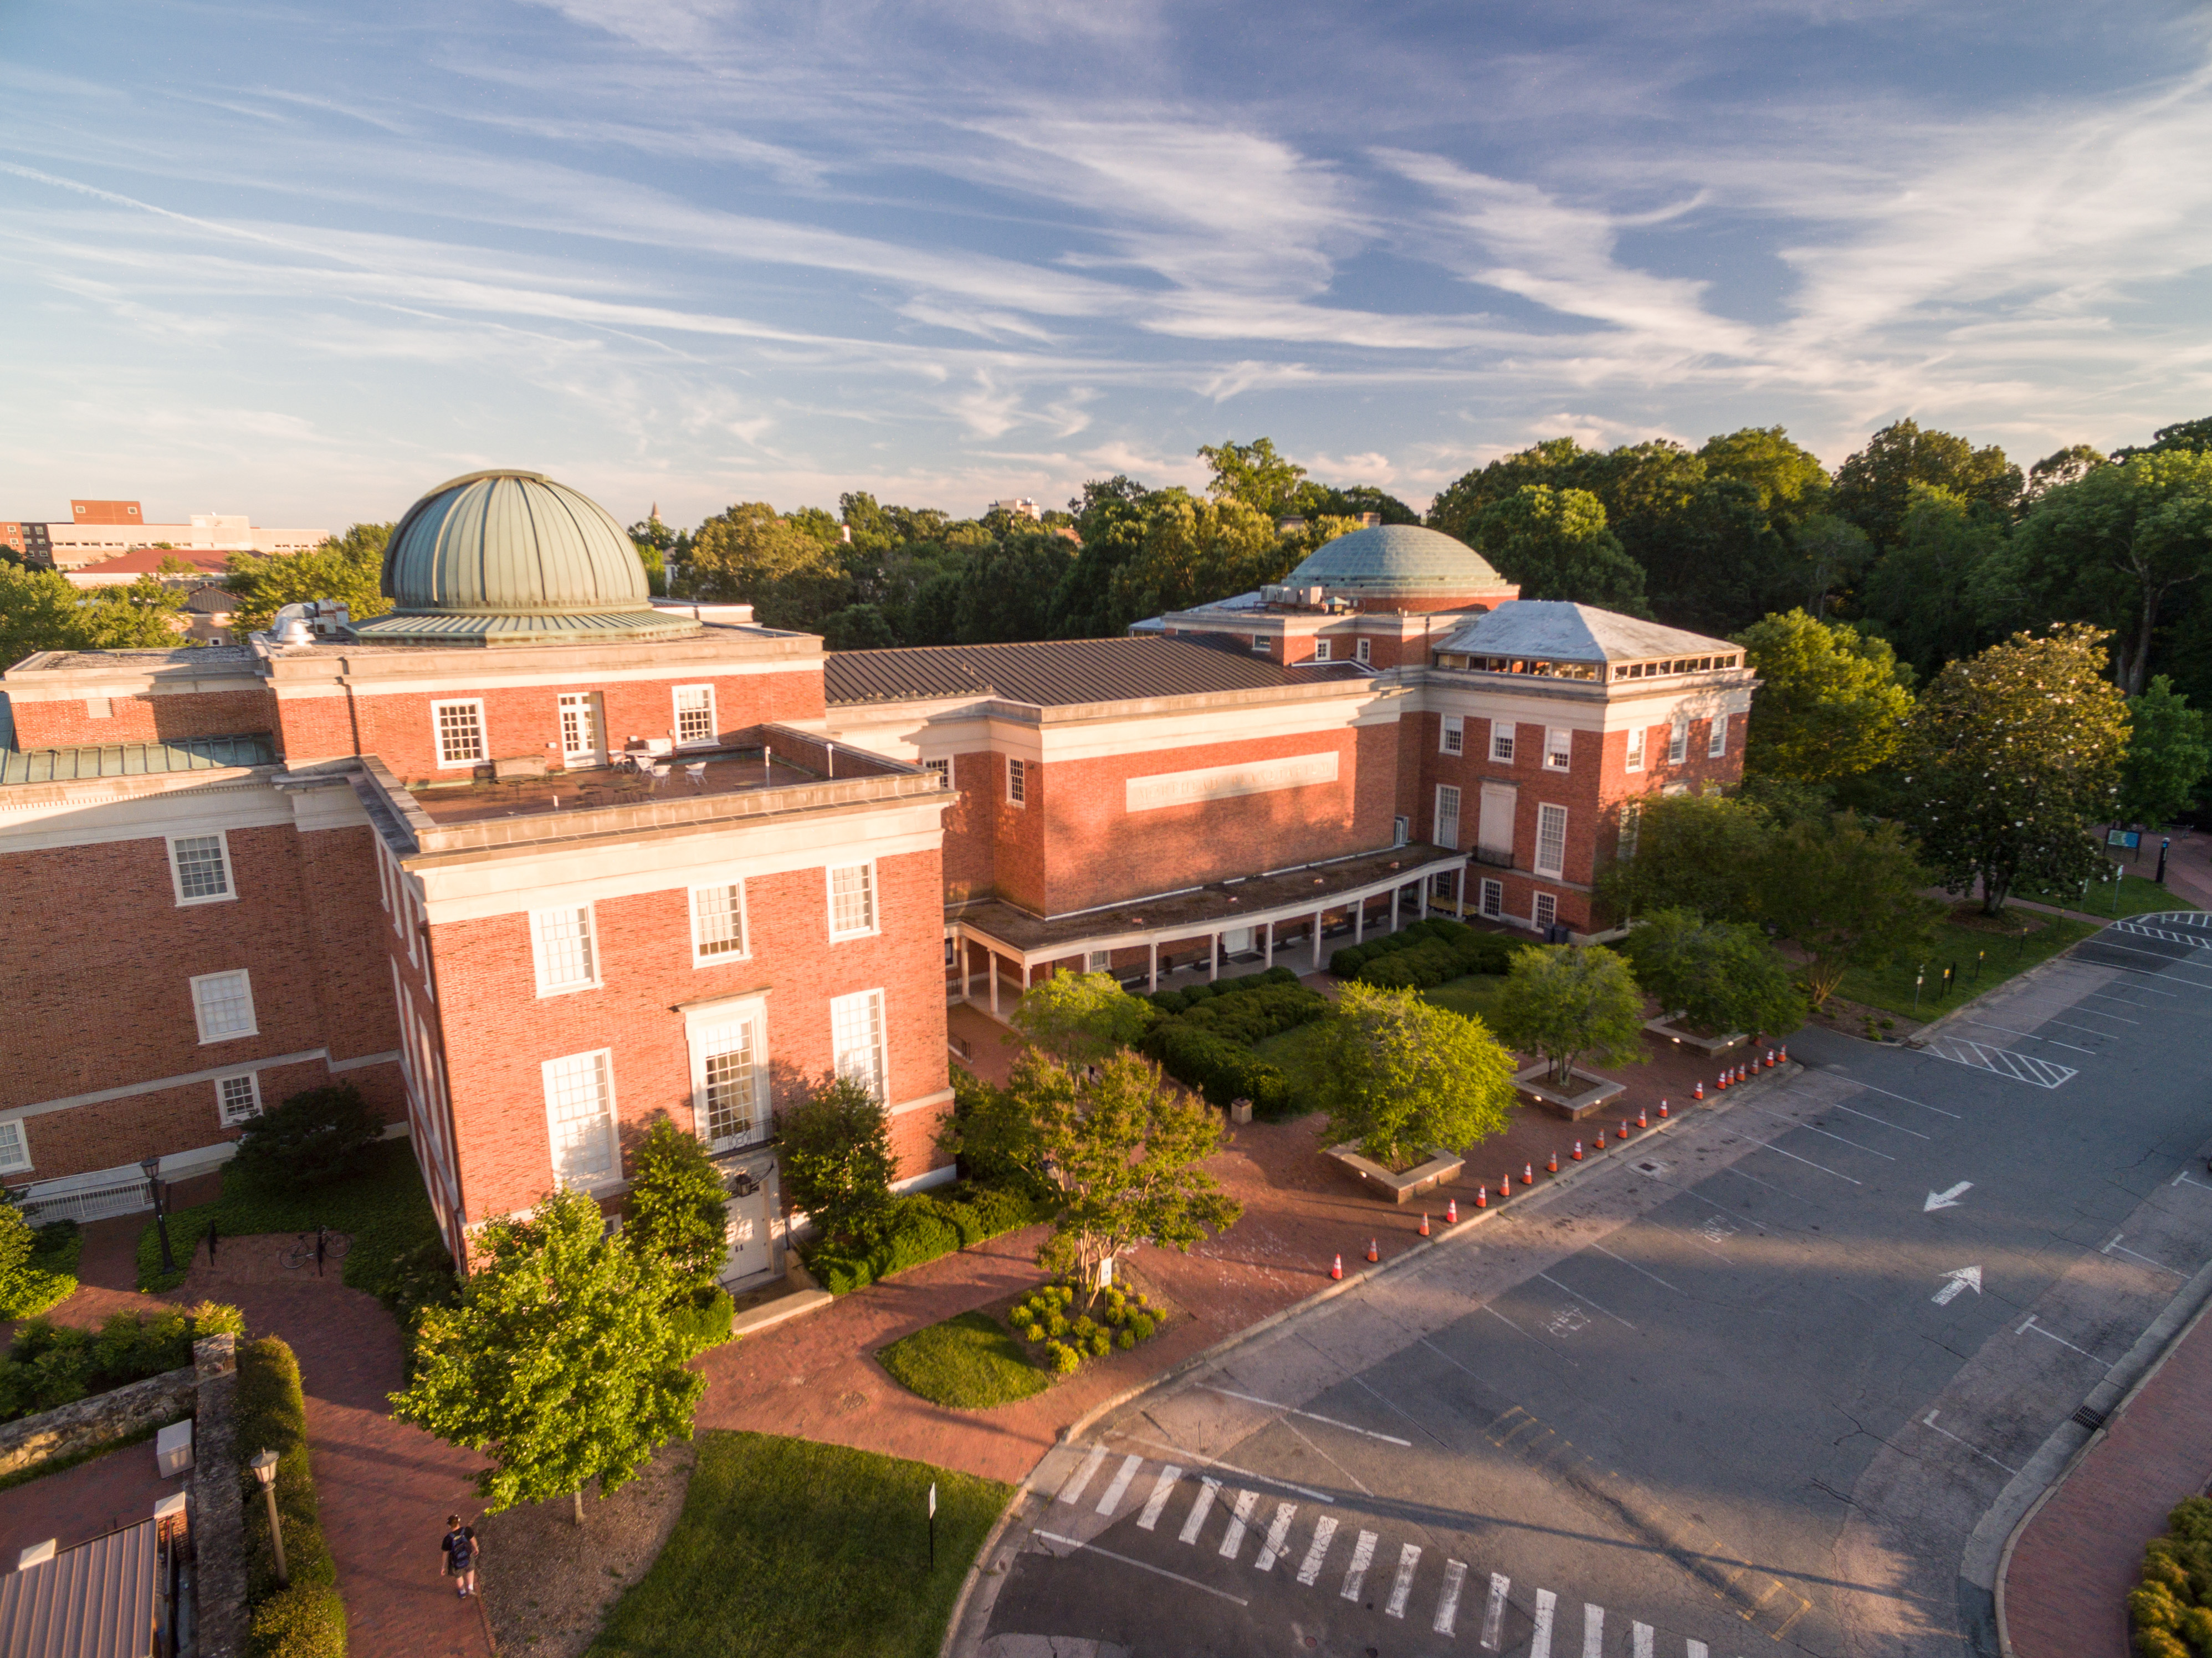 Morehead Planetarium & Science Center